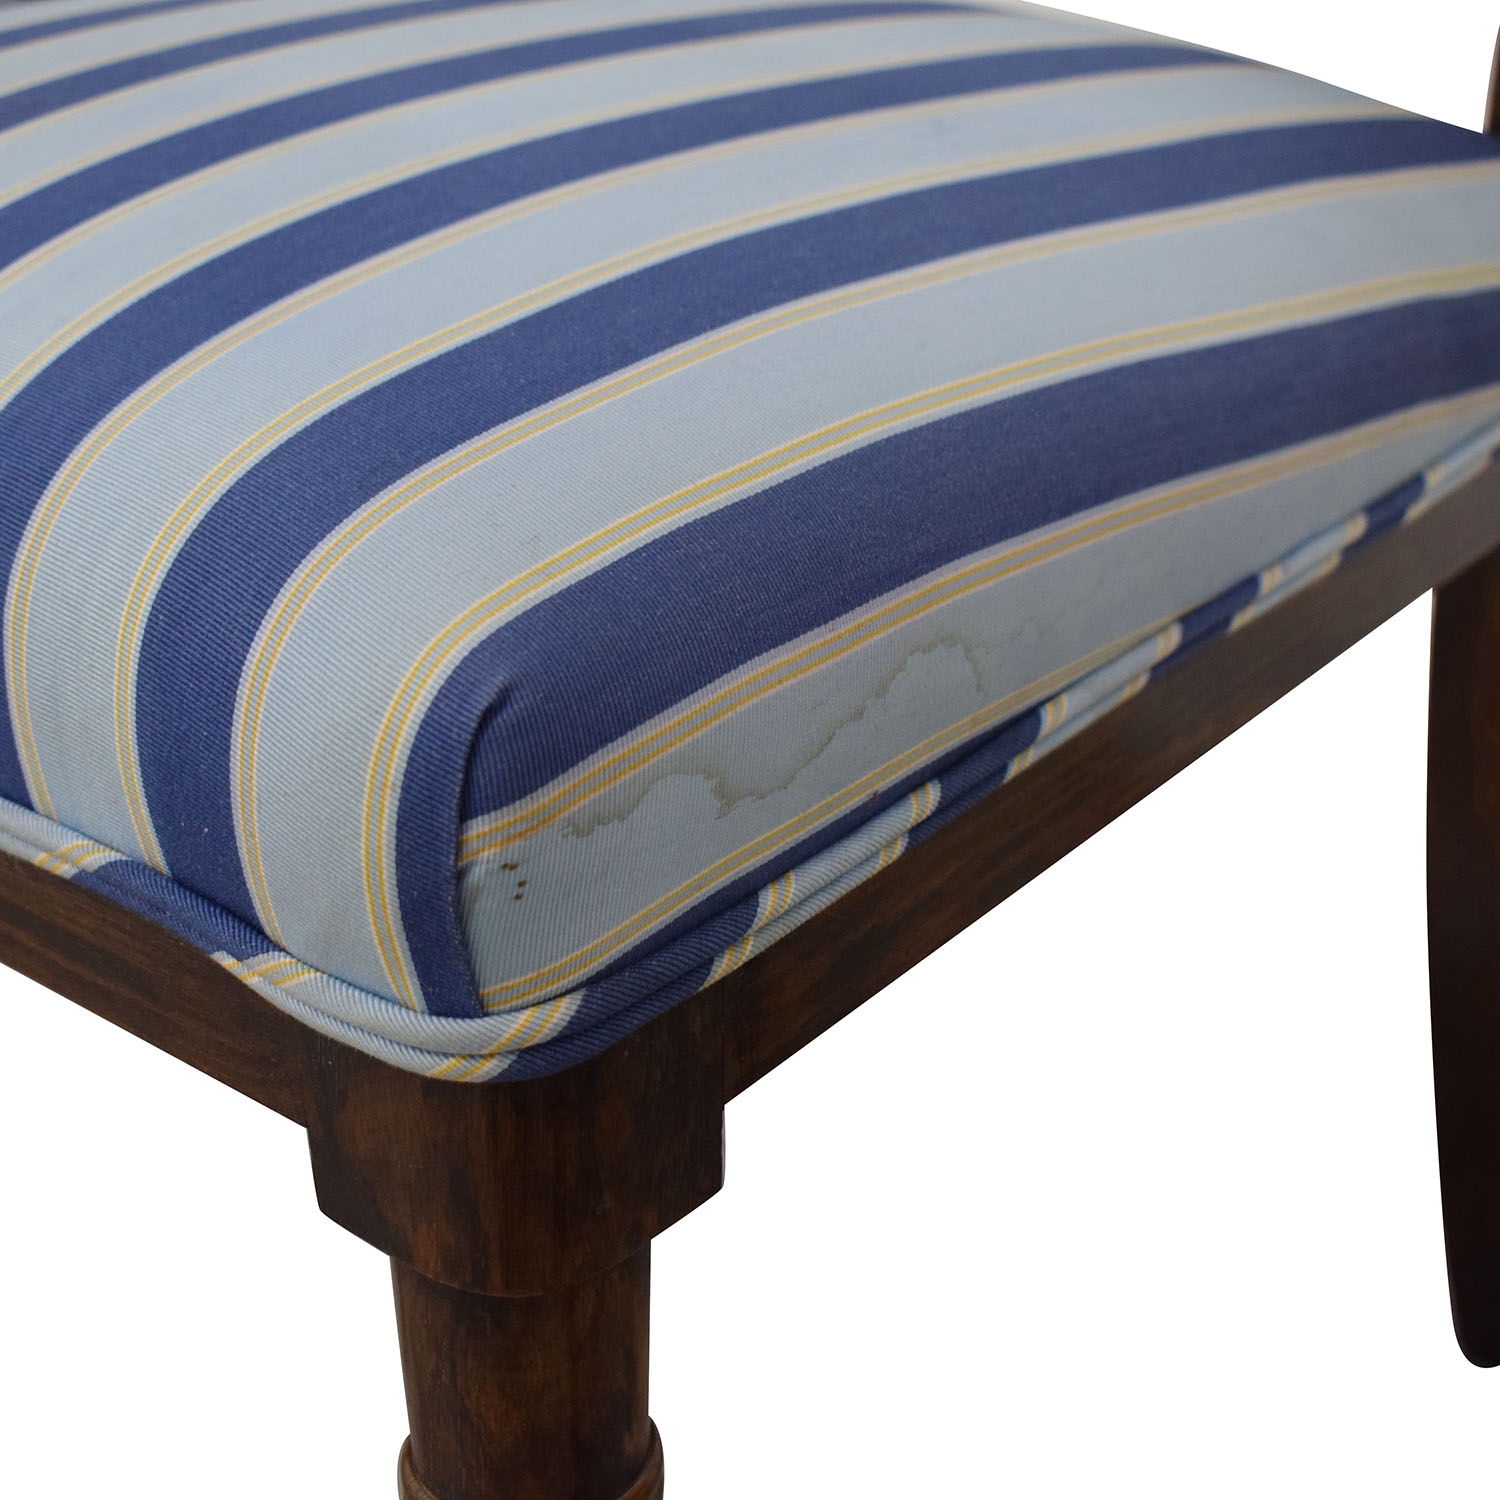 Hickory Chair Hickory Chair Striped Blue Dining Chairs on sale